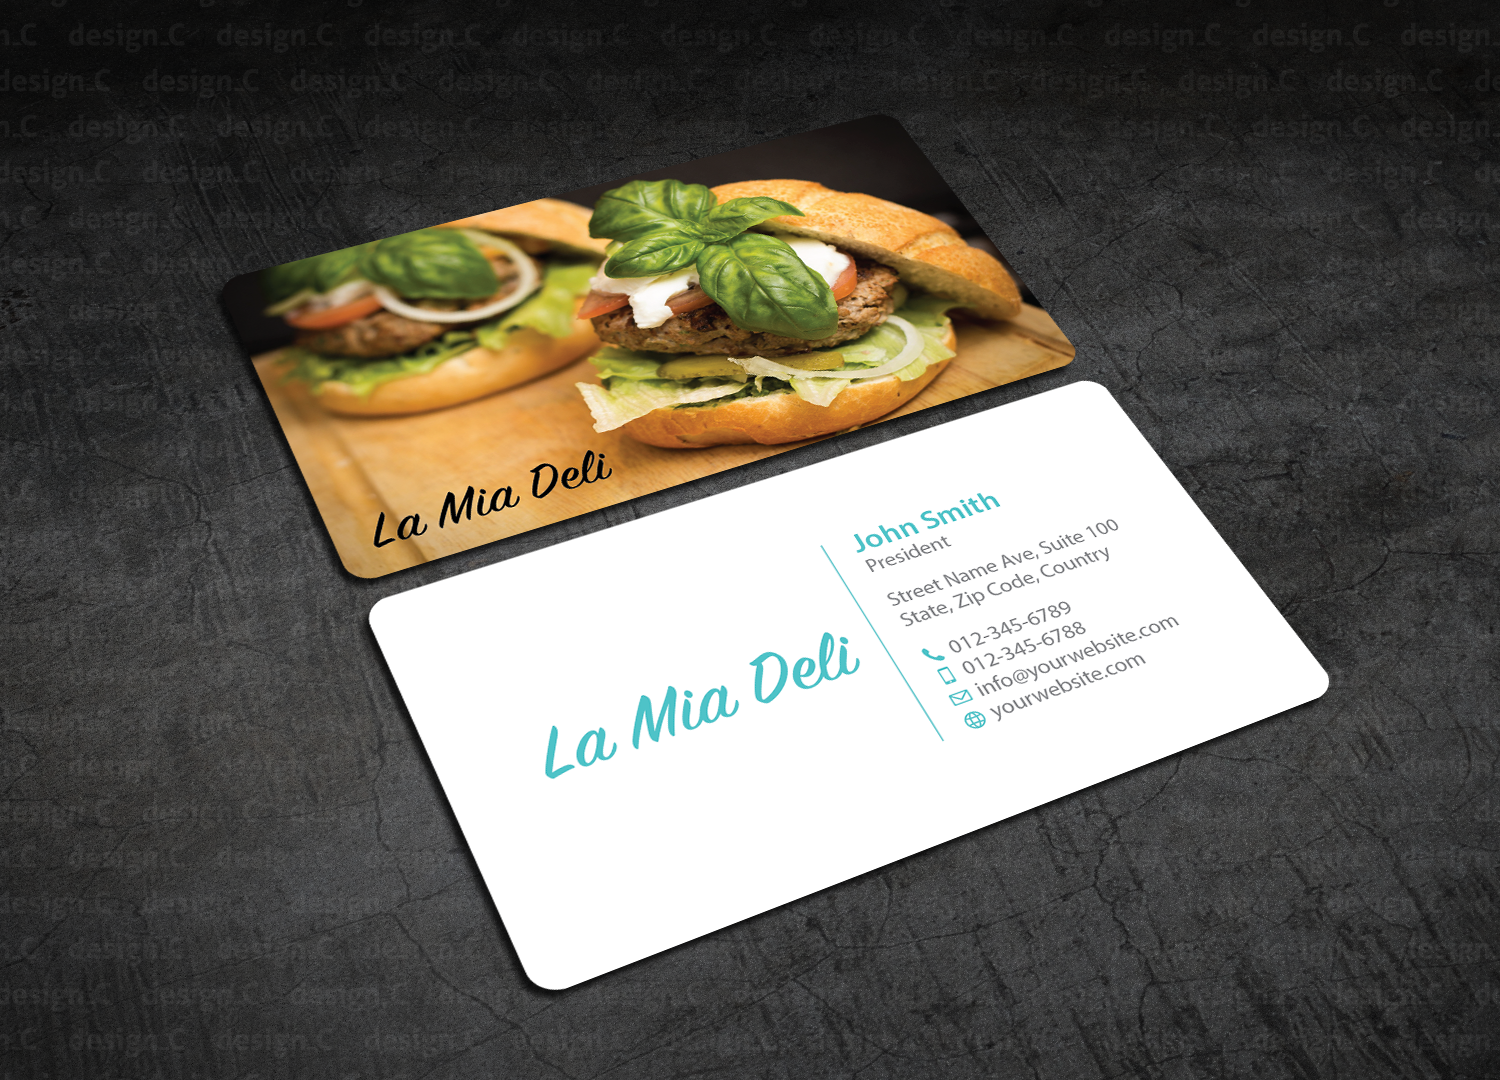 Elegant Playful Food Store Business Card Design For The Ups Store